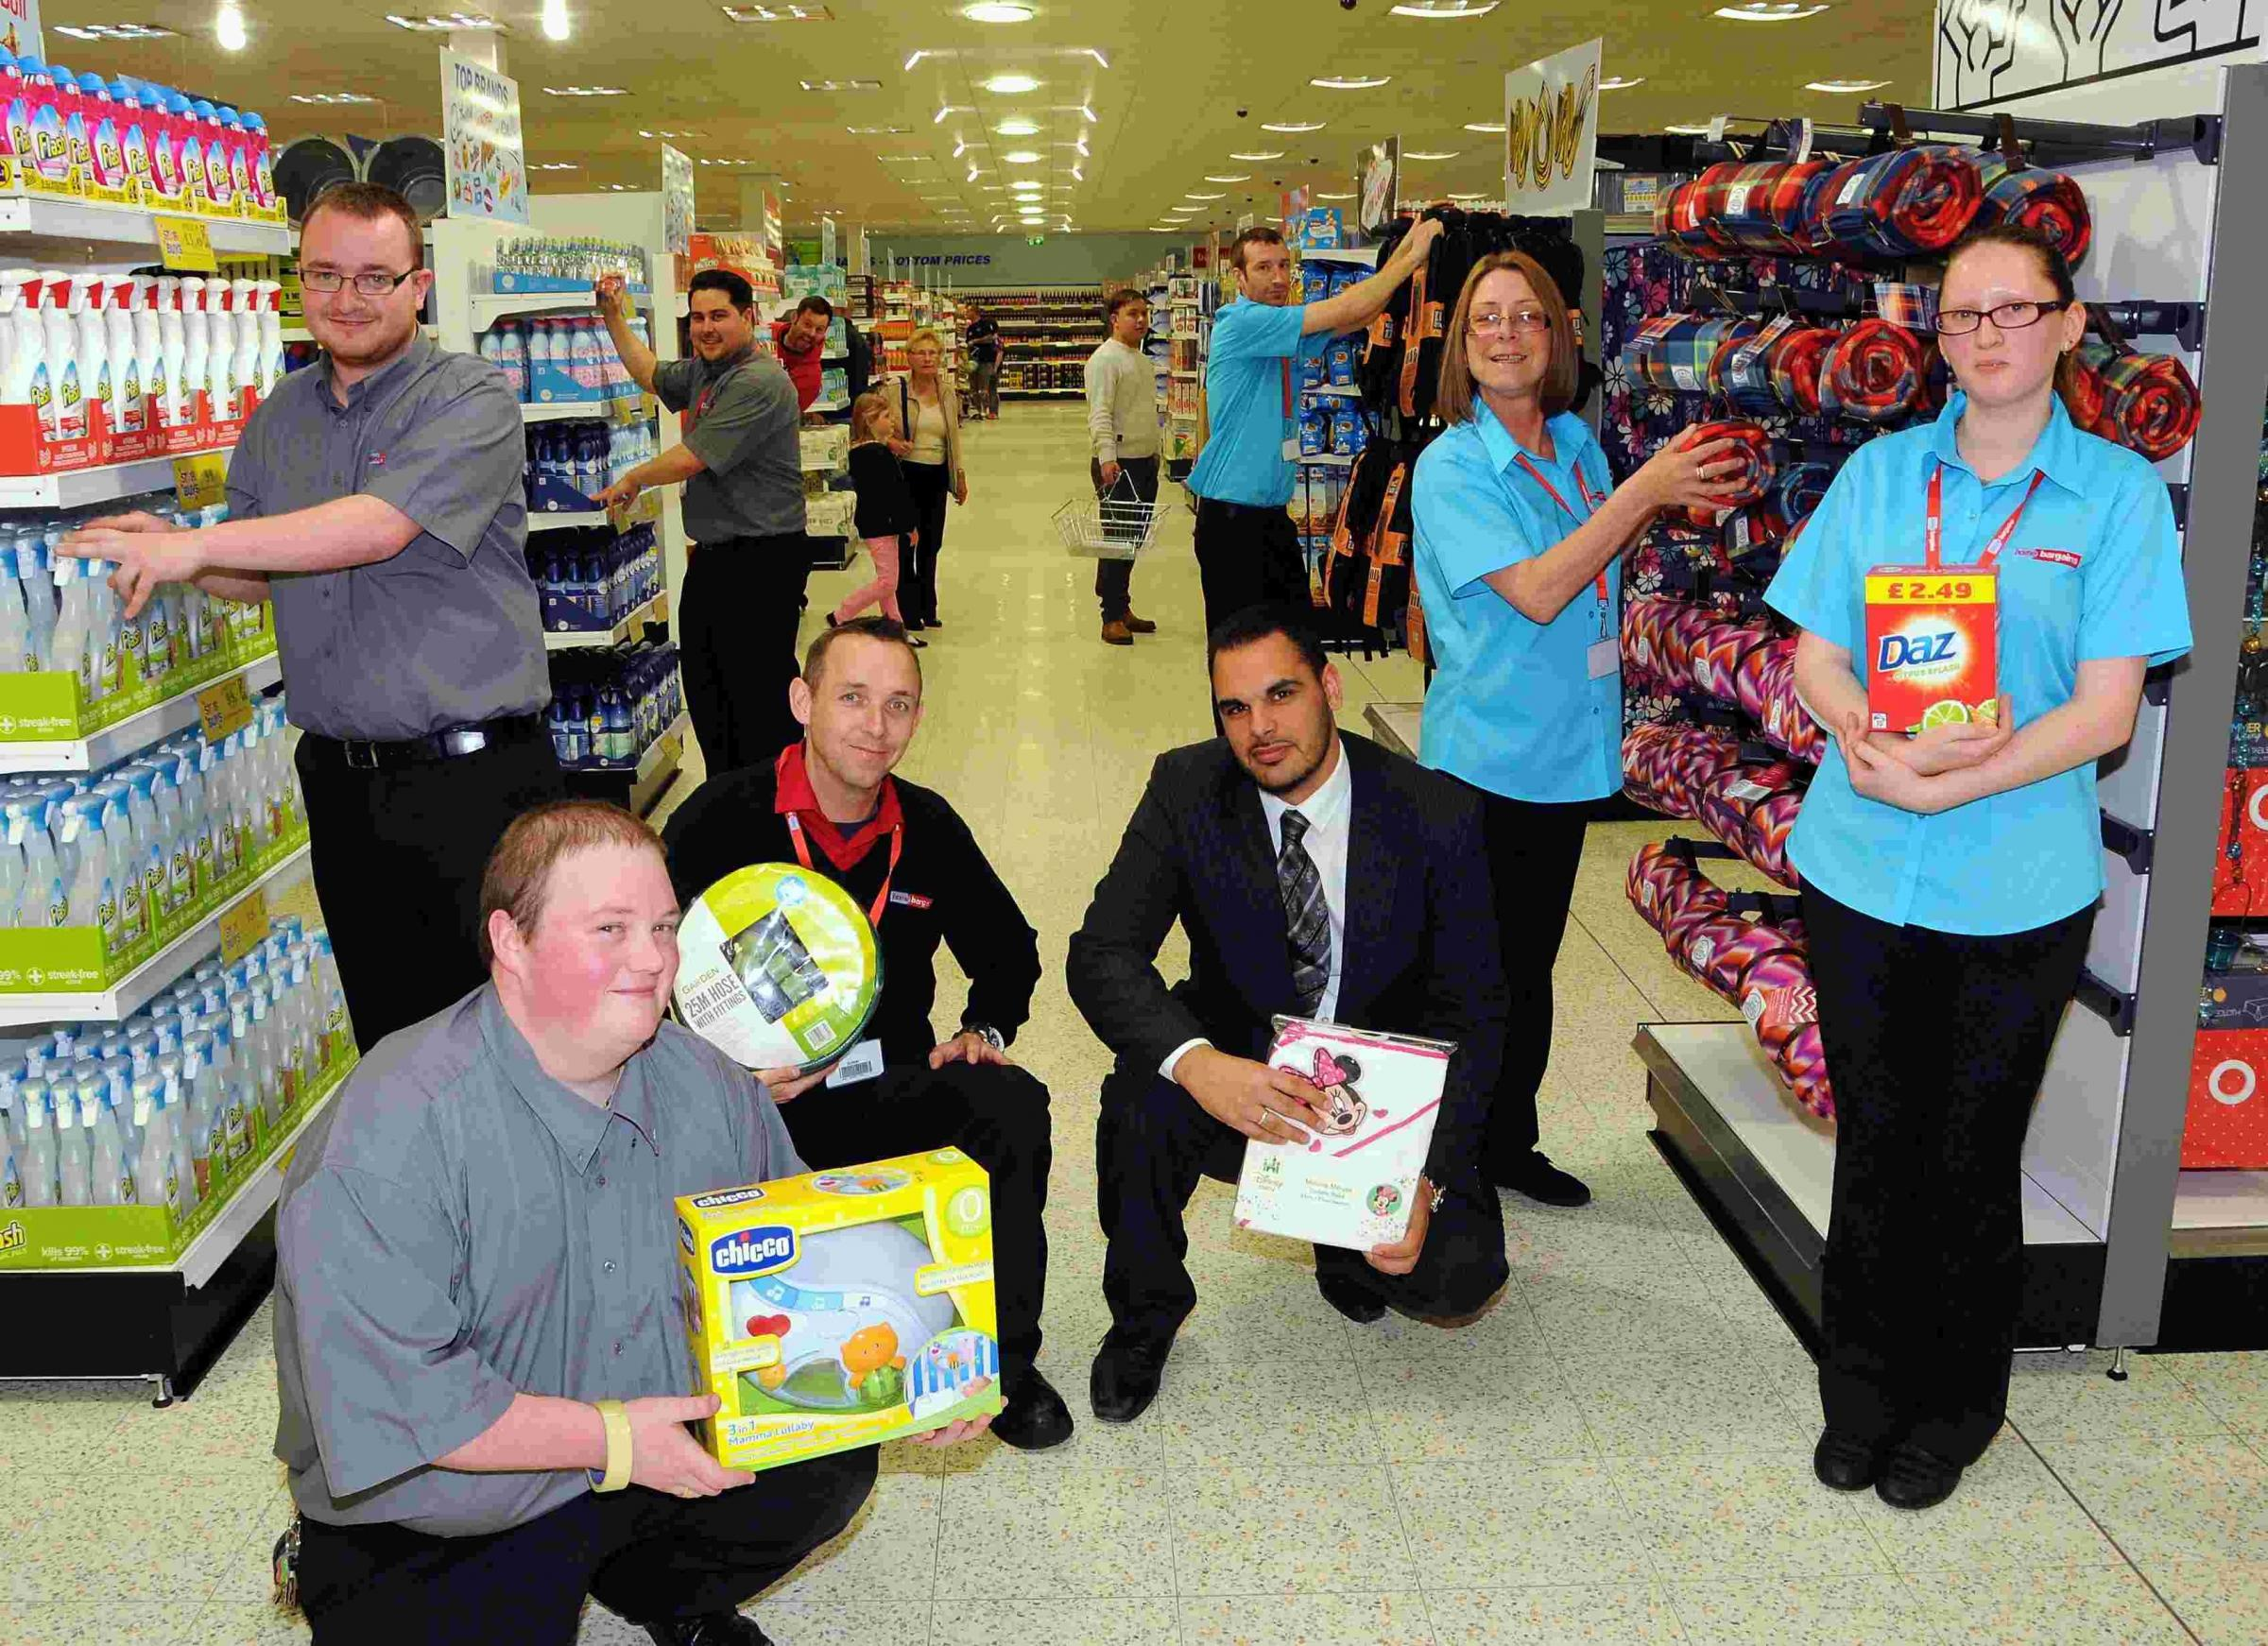 Store supervisors John Wellock and Robby Keating with area manager Kareem Jalwani and other members of staff at Home Bargains